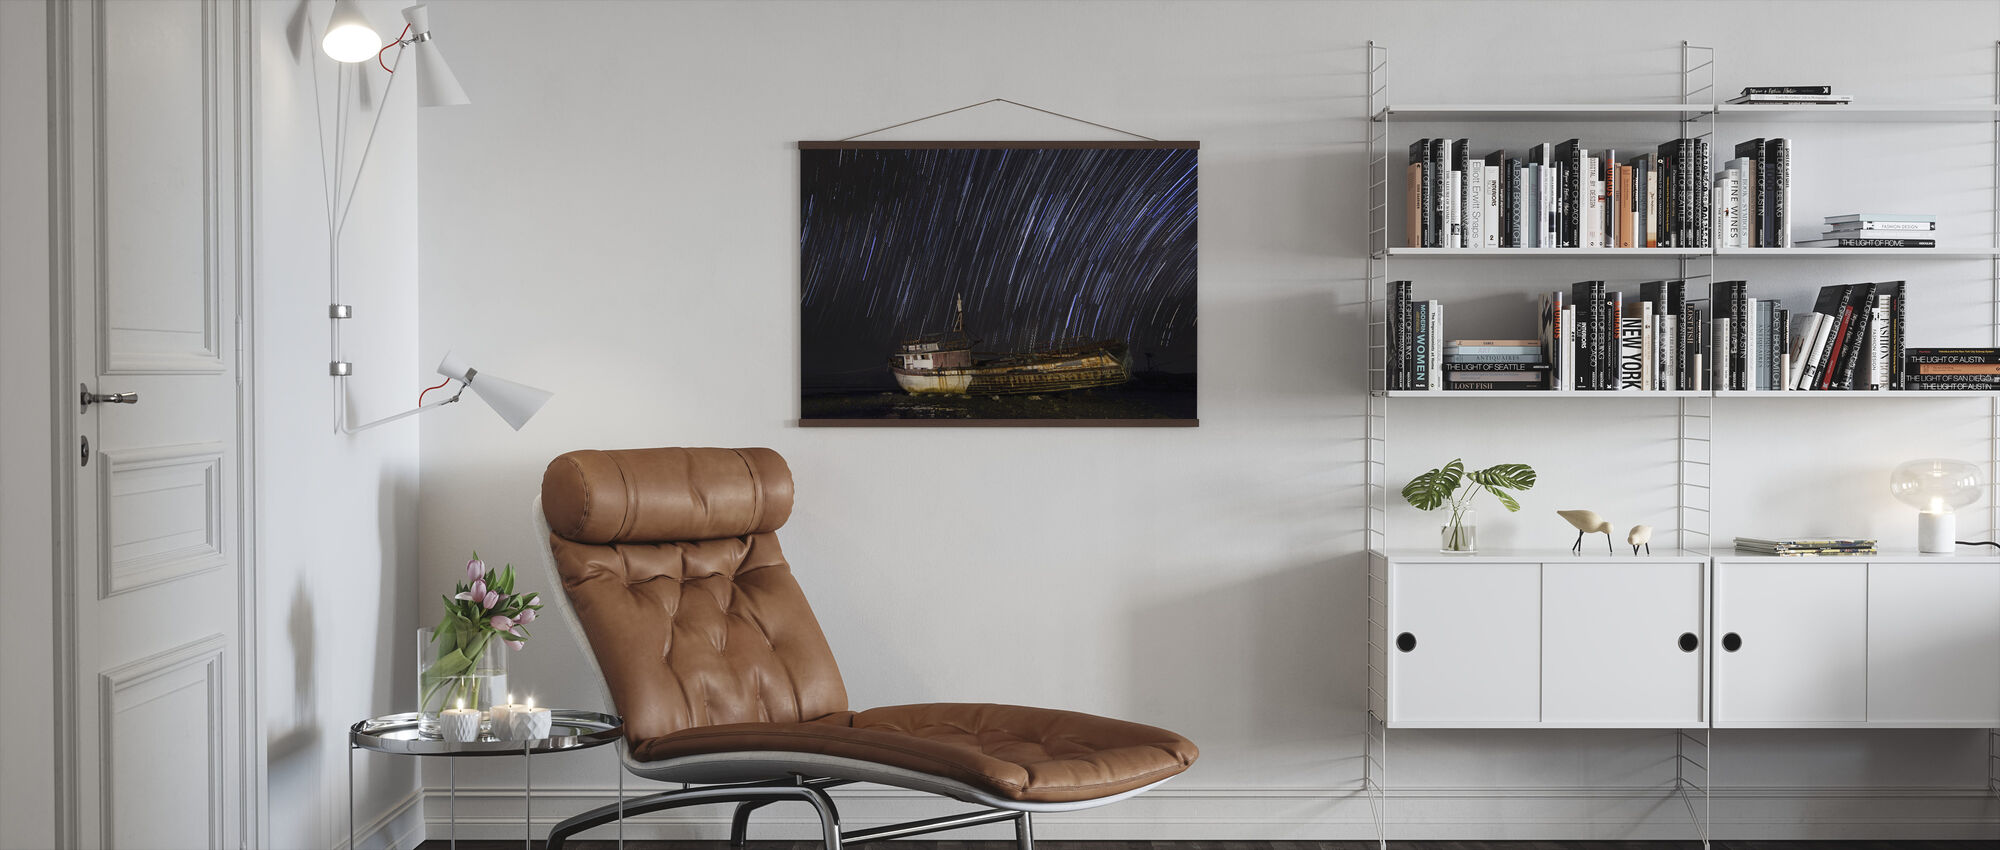 Santa Cruz Star Trail - Poster - Living Room